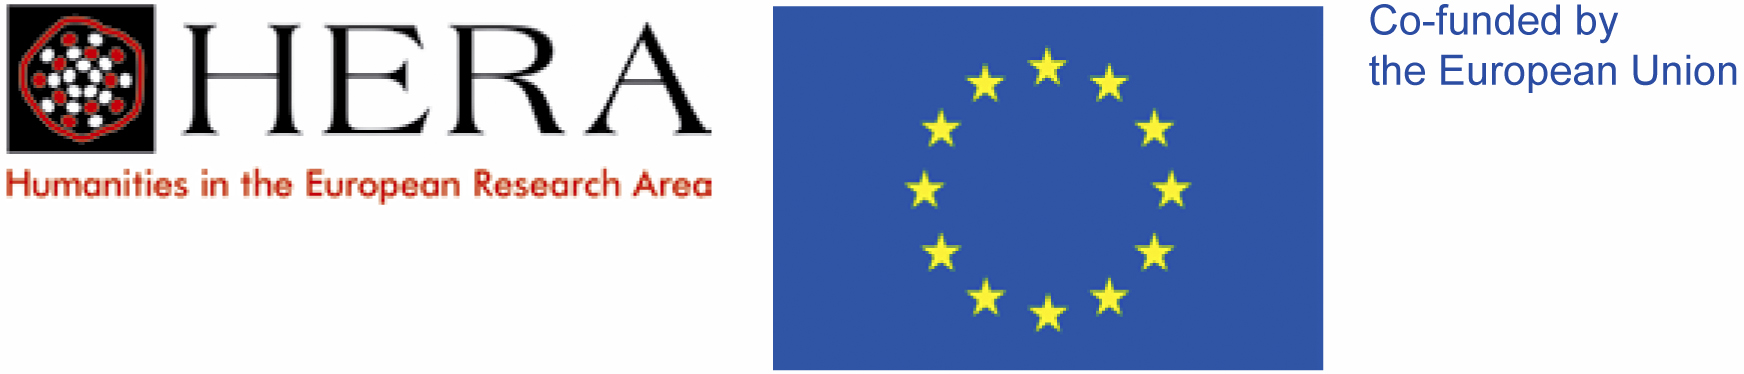 Co-funded by the European Union, HERA logo and EU flag